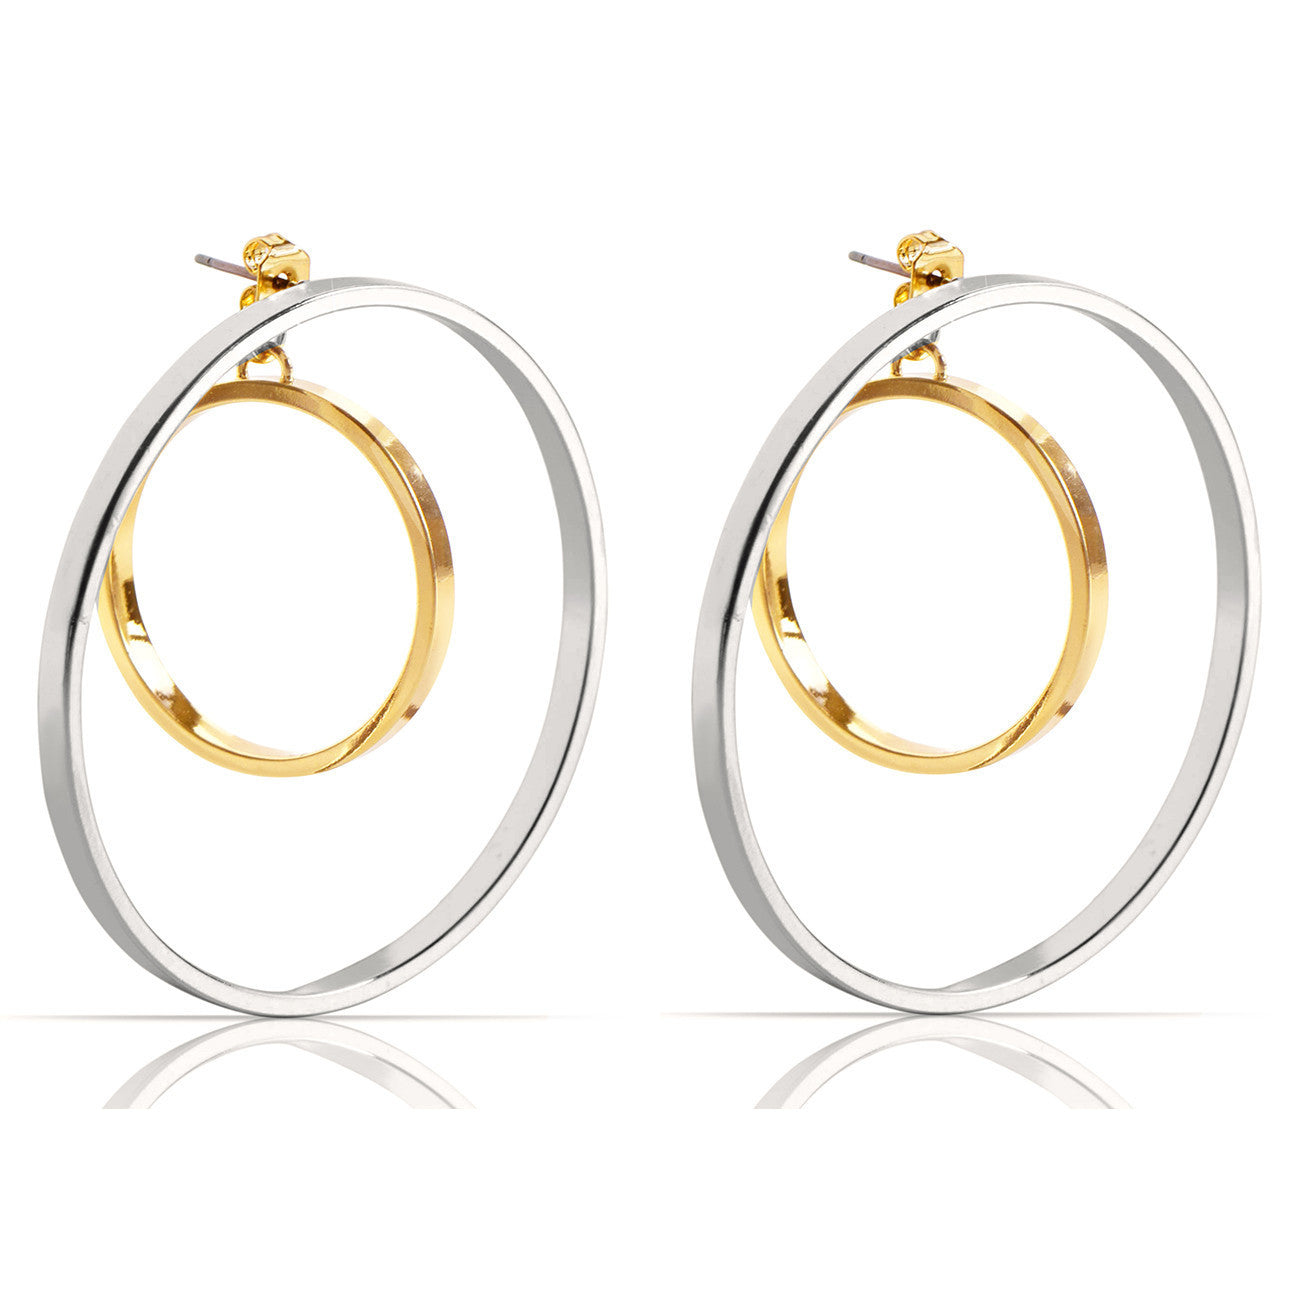 Jenny Bird Rise Hoop Earrings in Two Tone